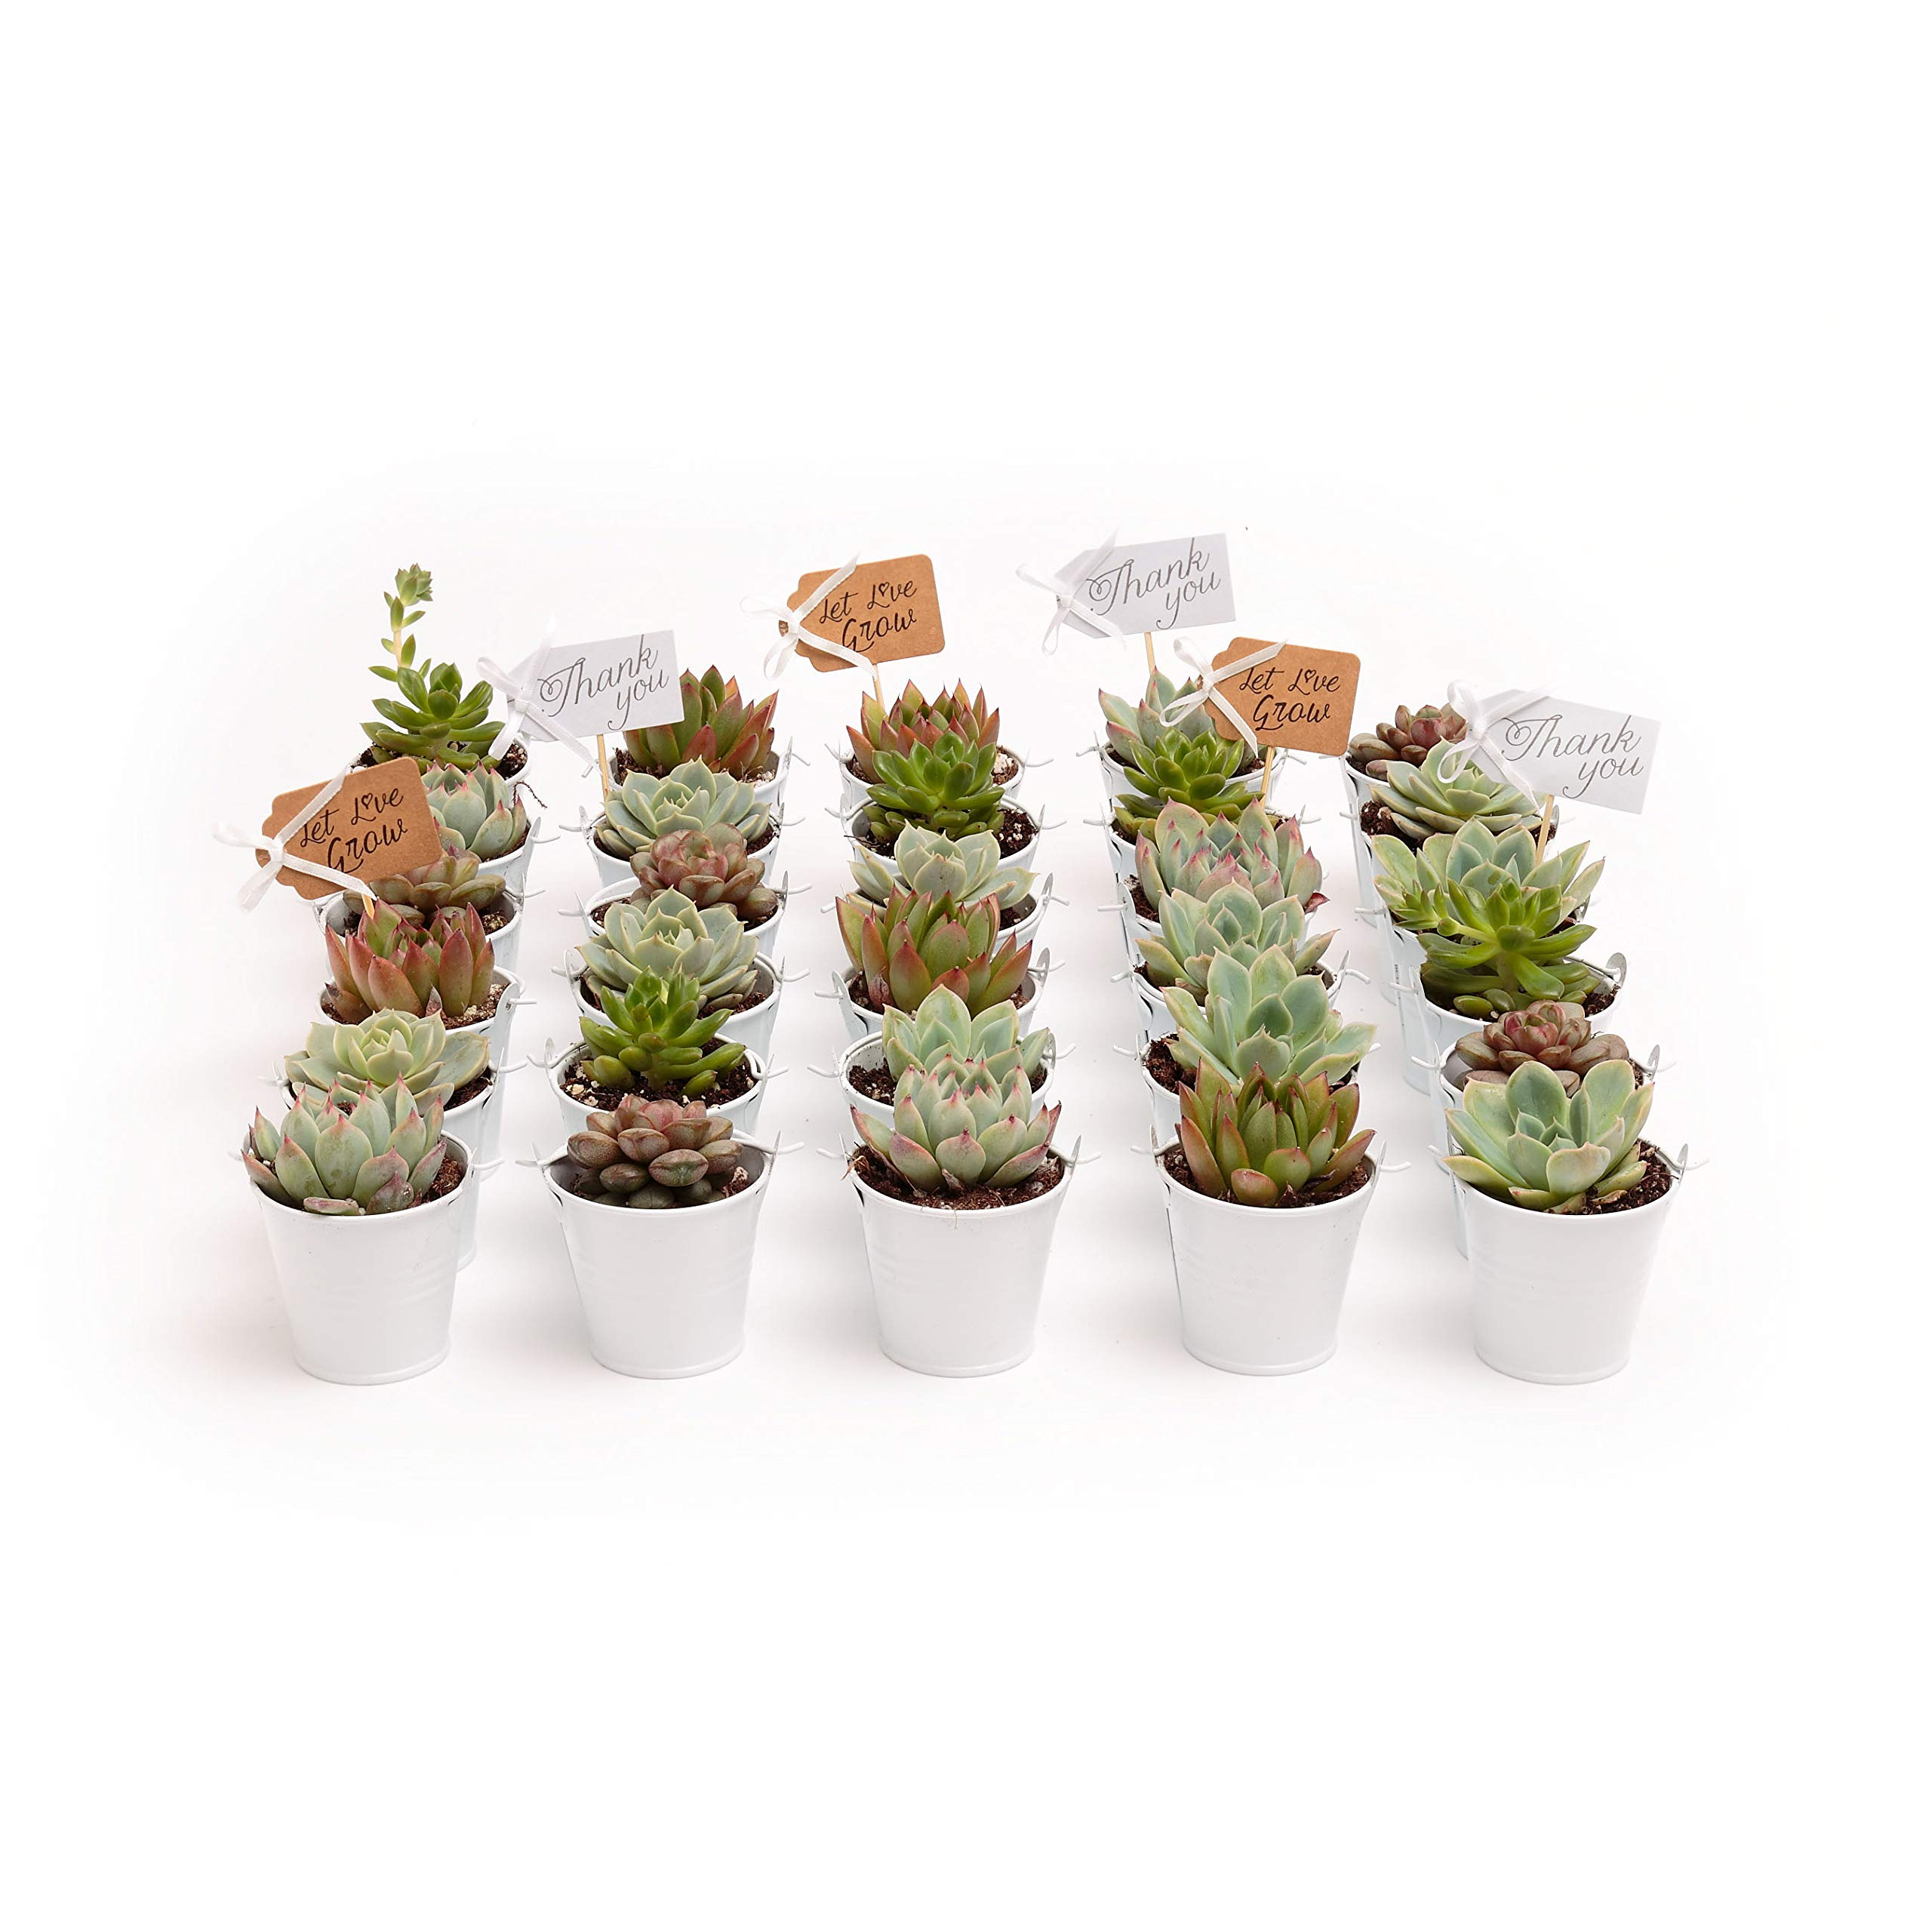 2 in. Wedding Event Rosette Succulents with White Metal Pails and Thank You Tags (60) by Succulent Source (Image #1)